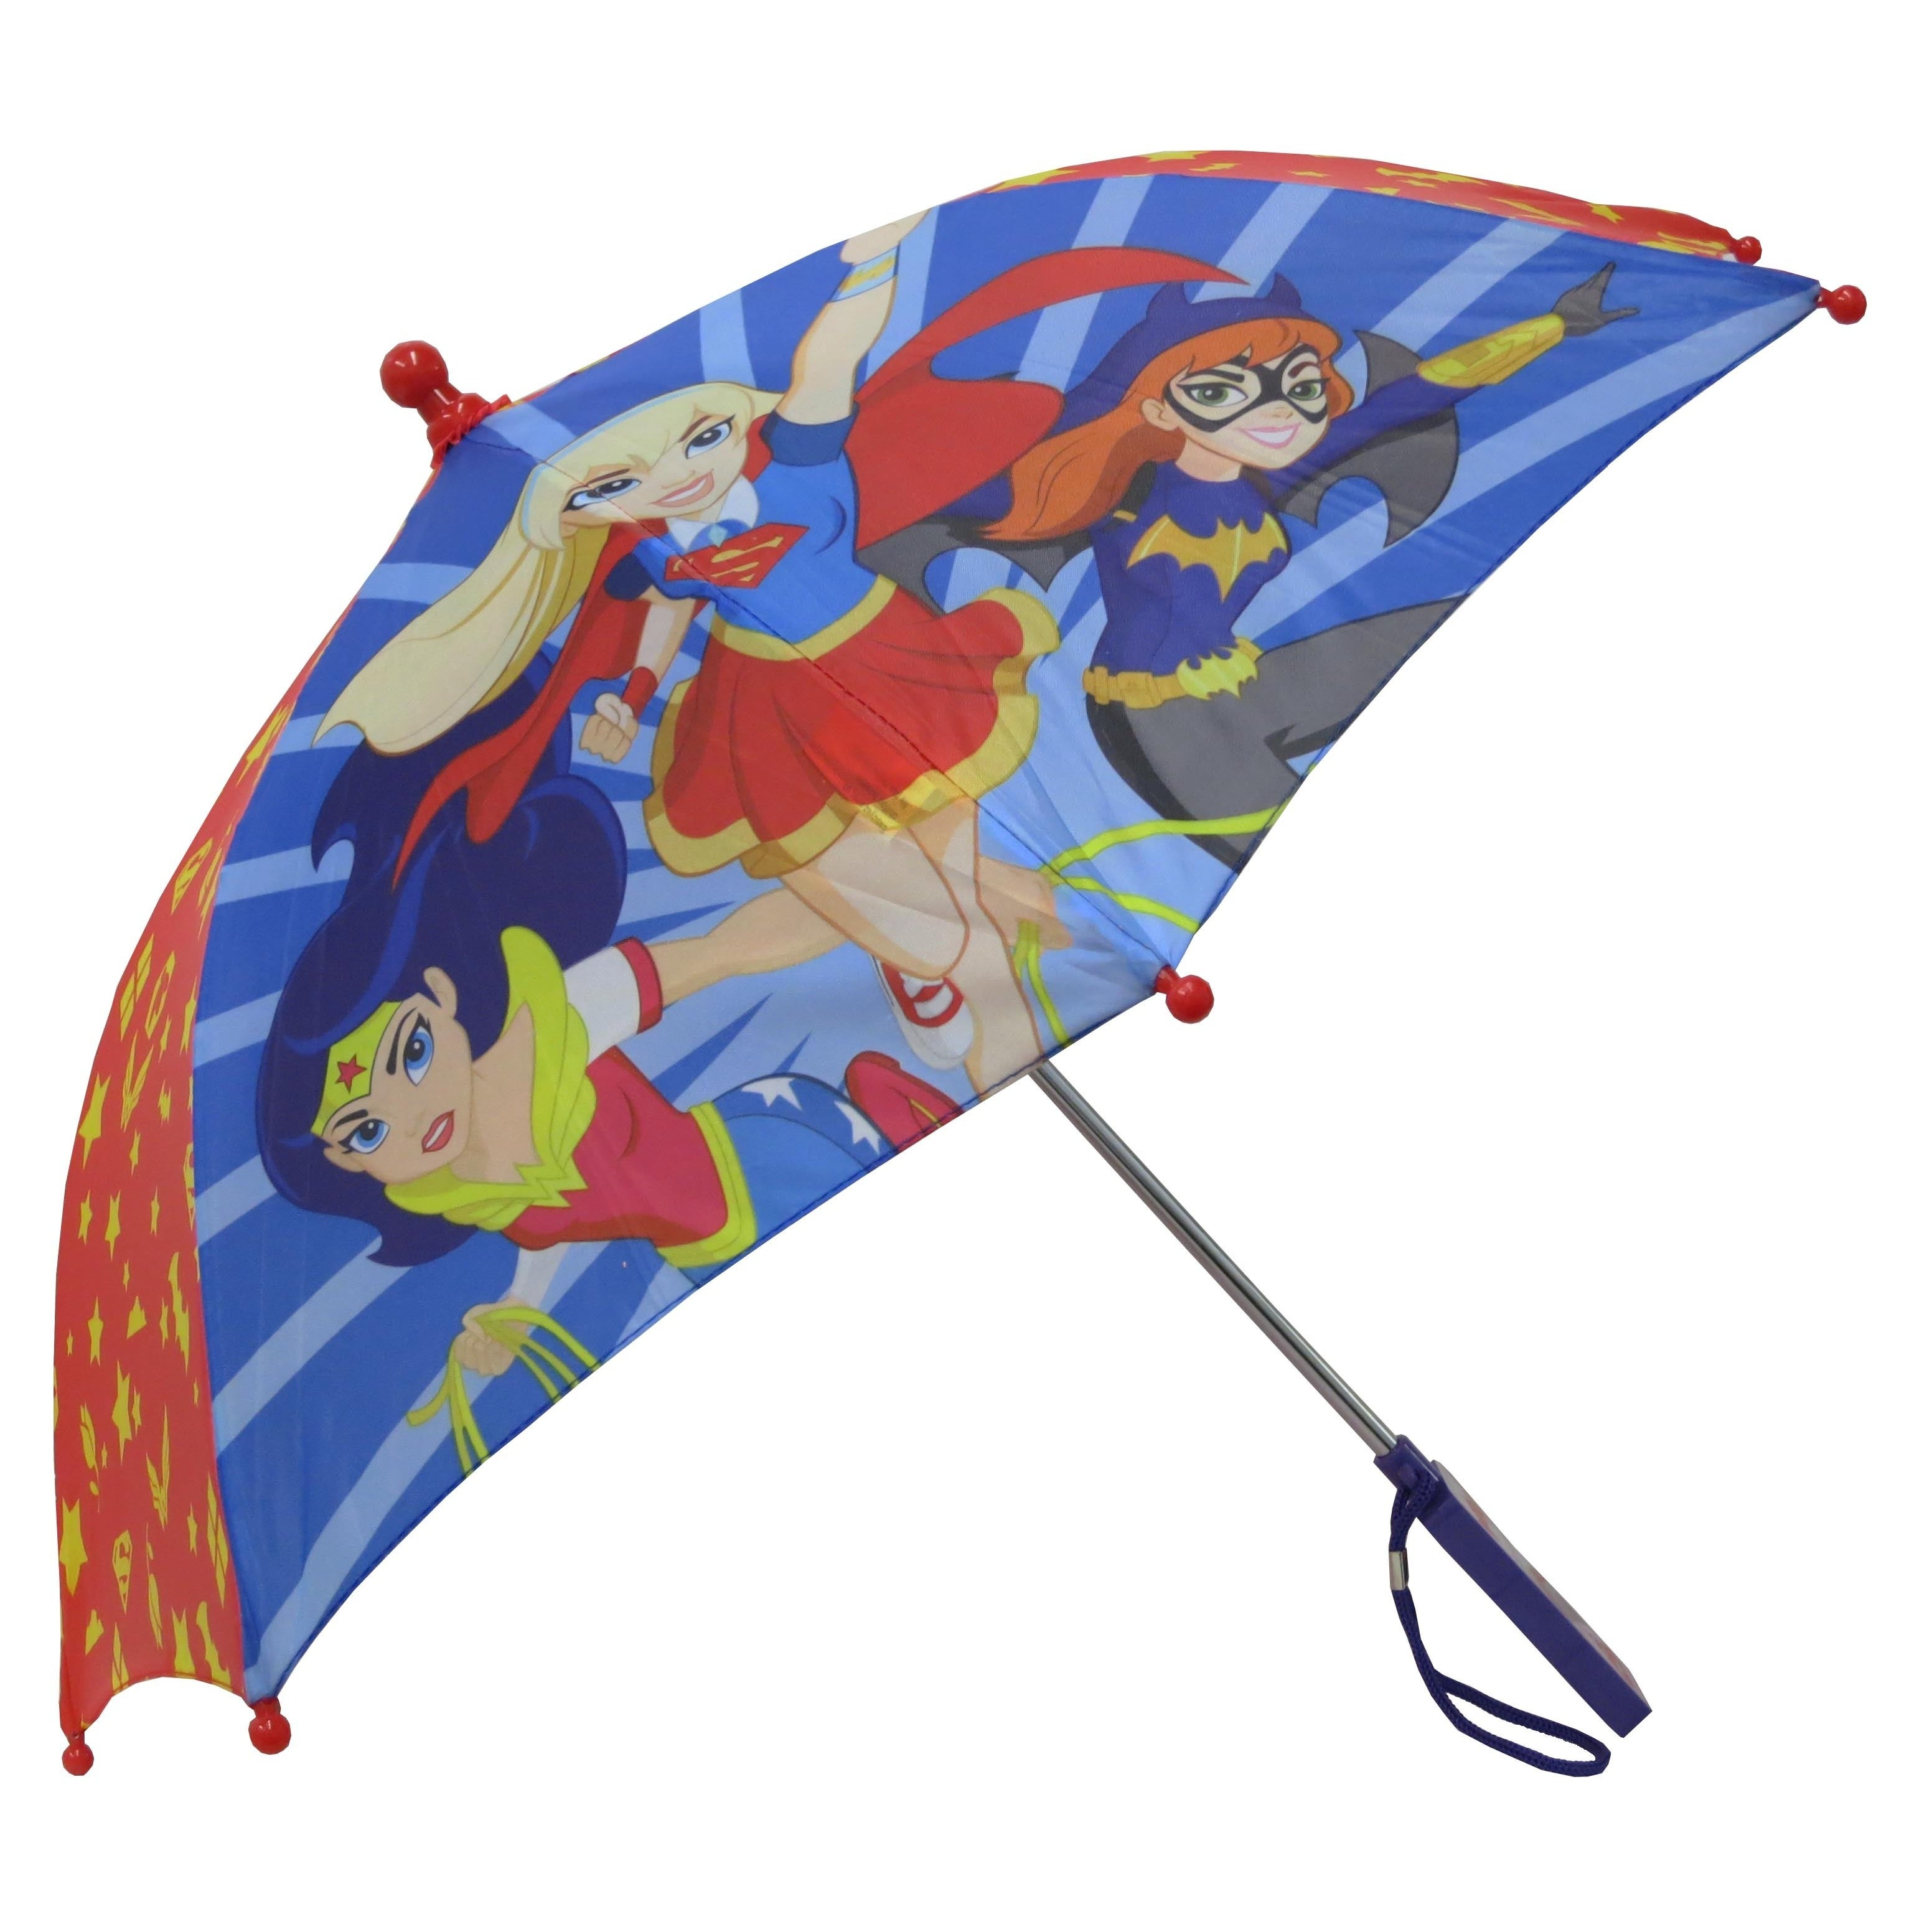 Dc Comics Superhero Girl's Red Umbrella (Red and Blue), S...